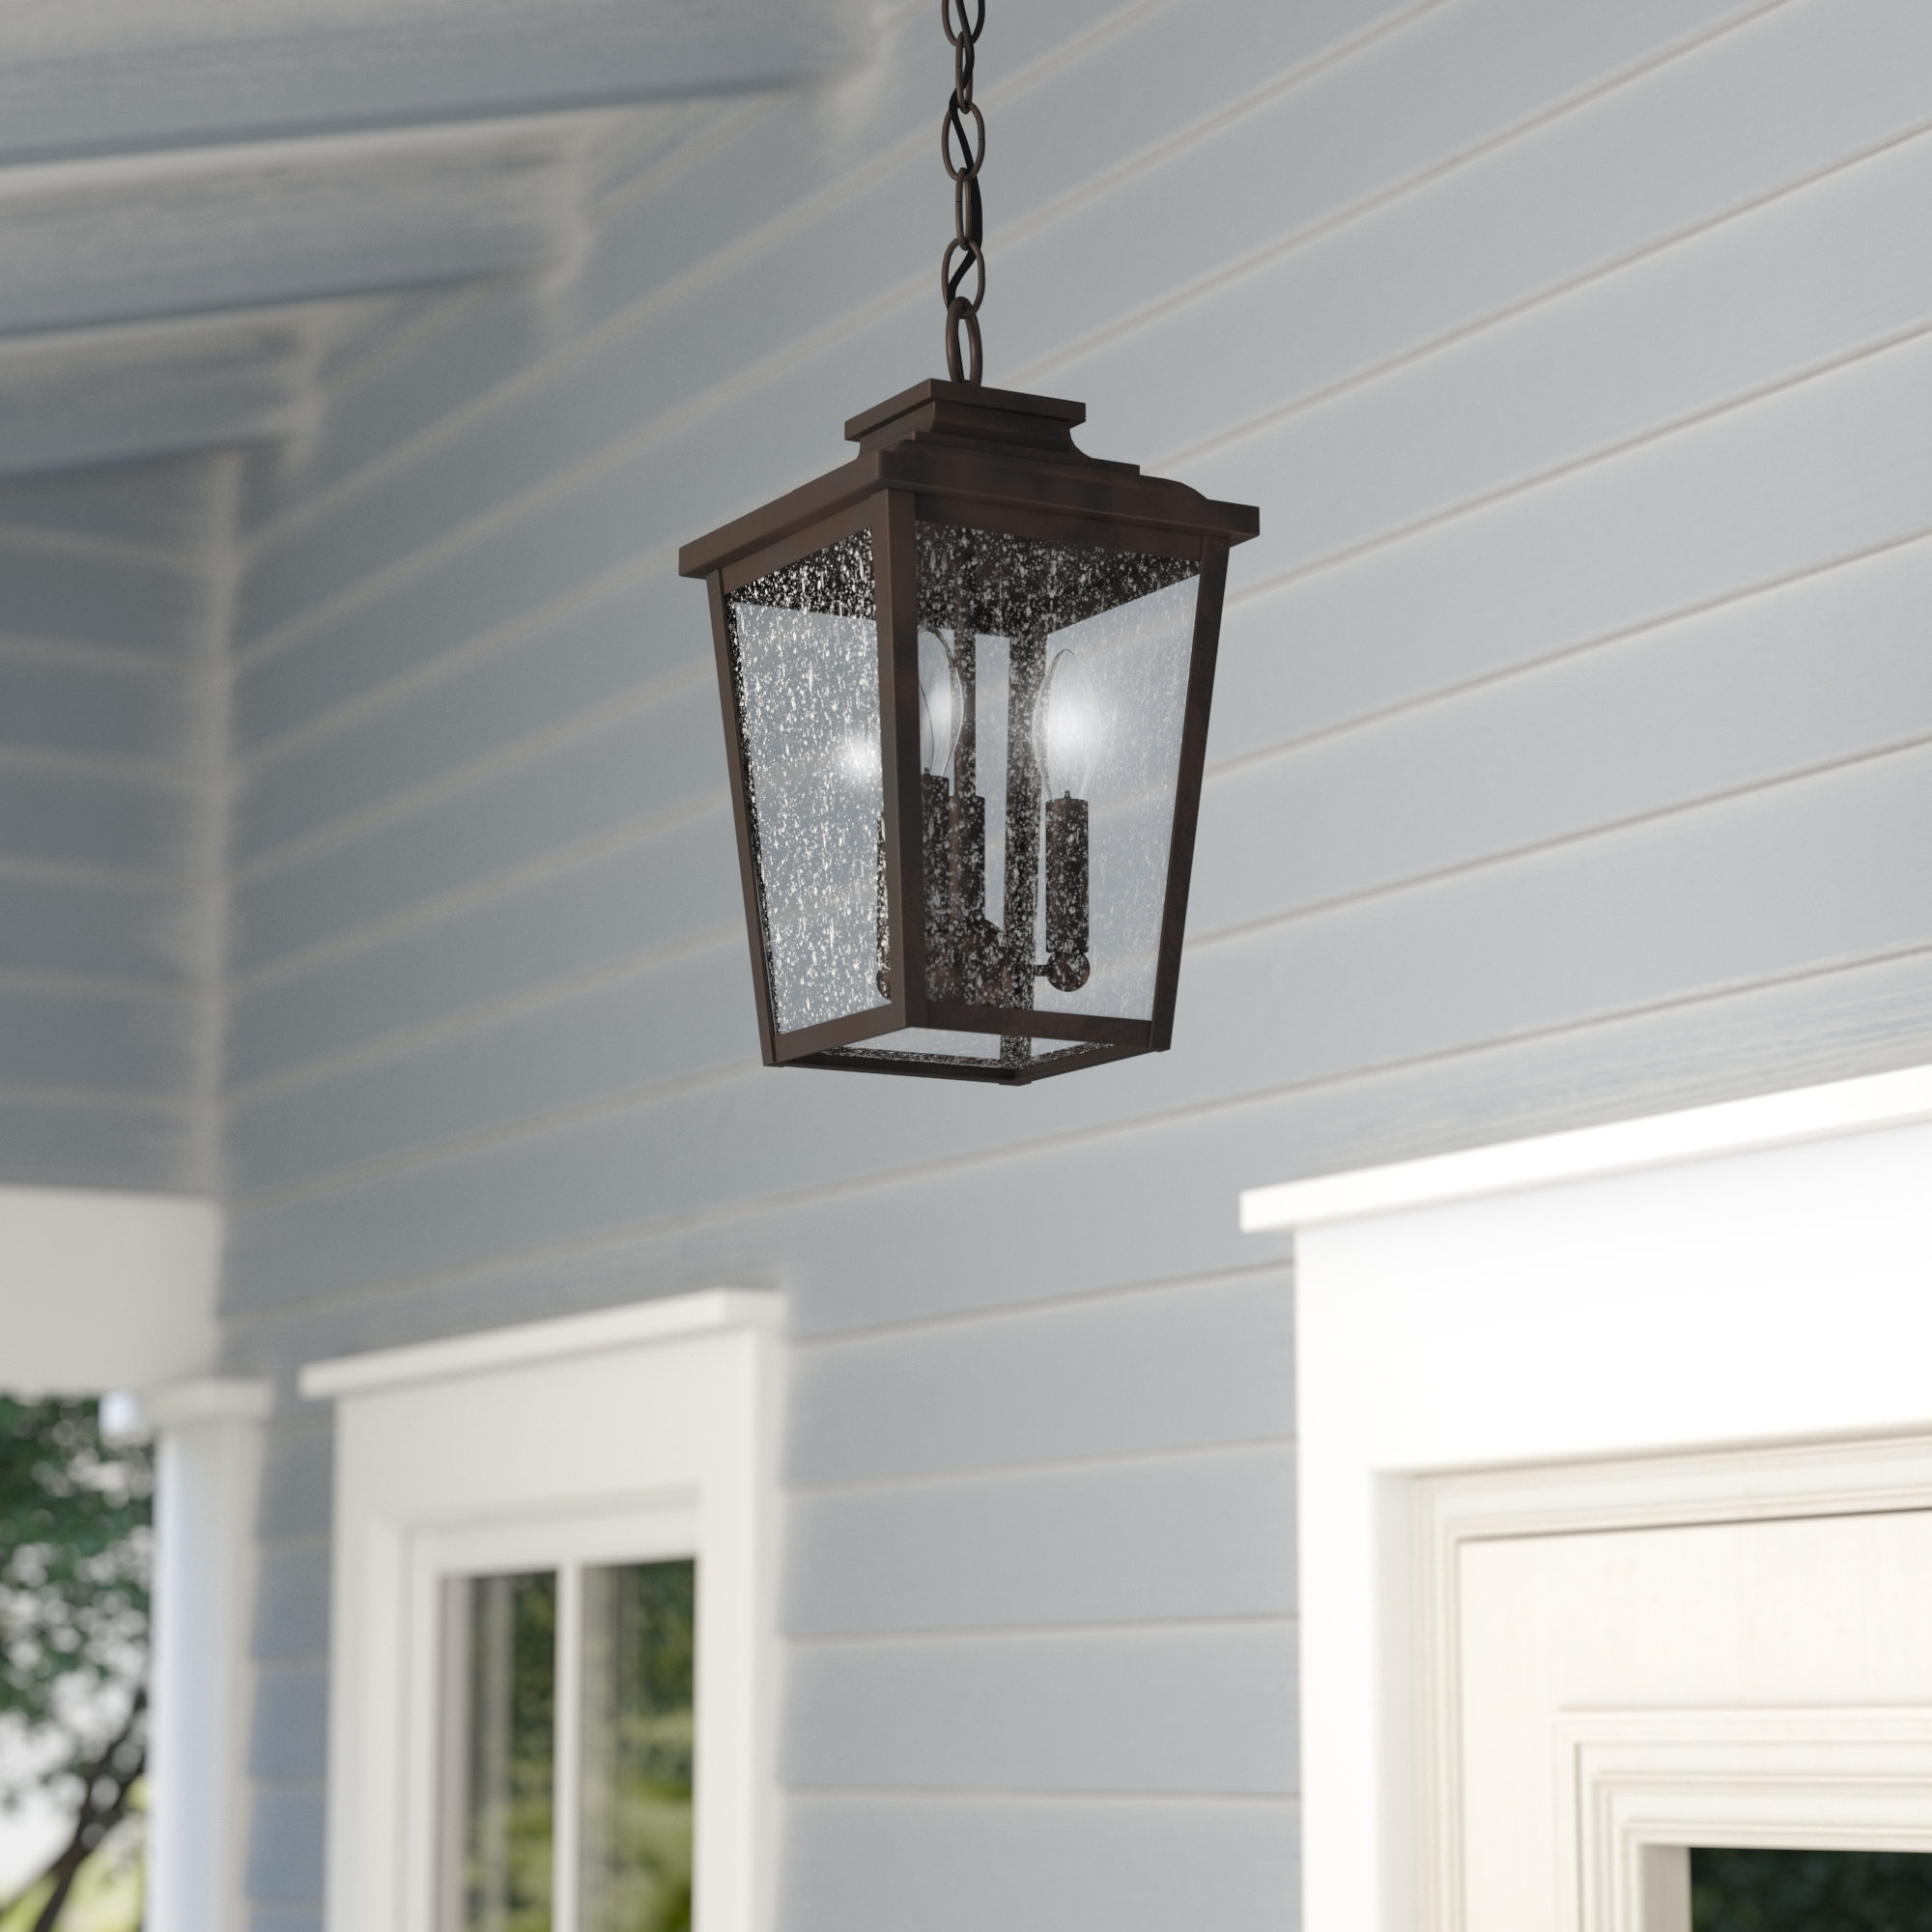 Hanging Porch Lights Attractive Outdoor Light Wayfair In 9 Regarding Modern Outdoor String Lights At Wayfair (#4 of 15)